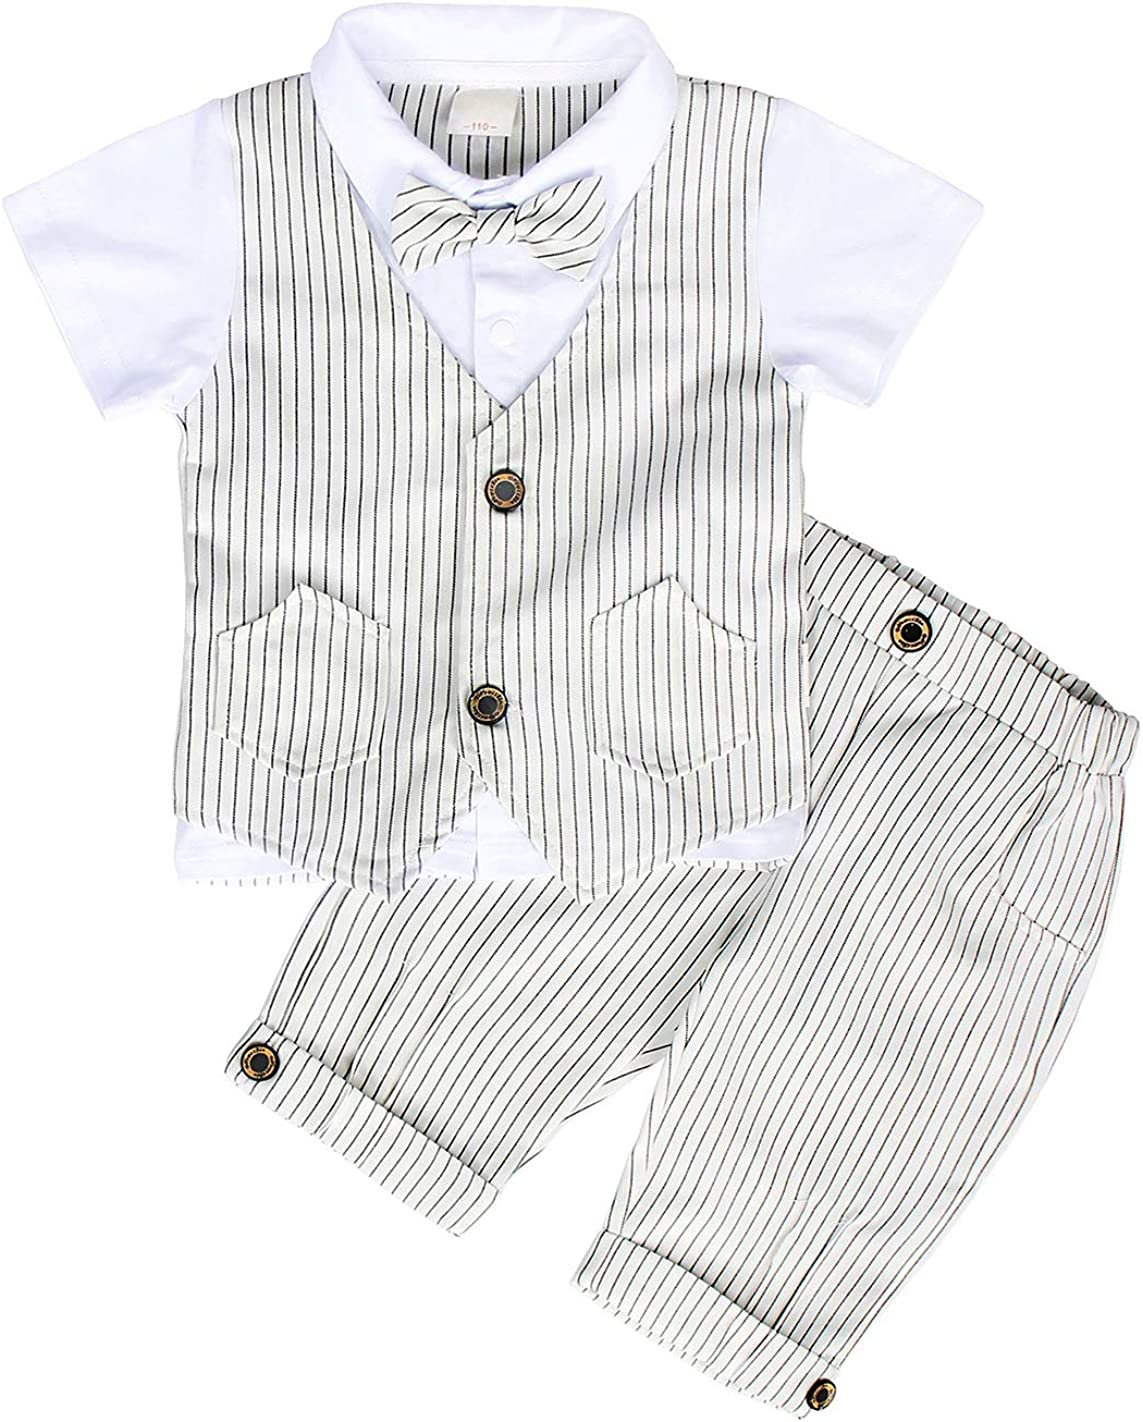 MetCuento Baby Boy Gentleman Outfit Short Sleeve Suit Classic Tuxedo Bow Tie Wedding Party Formal Dress Suit